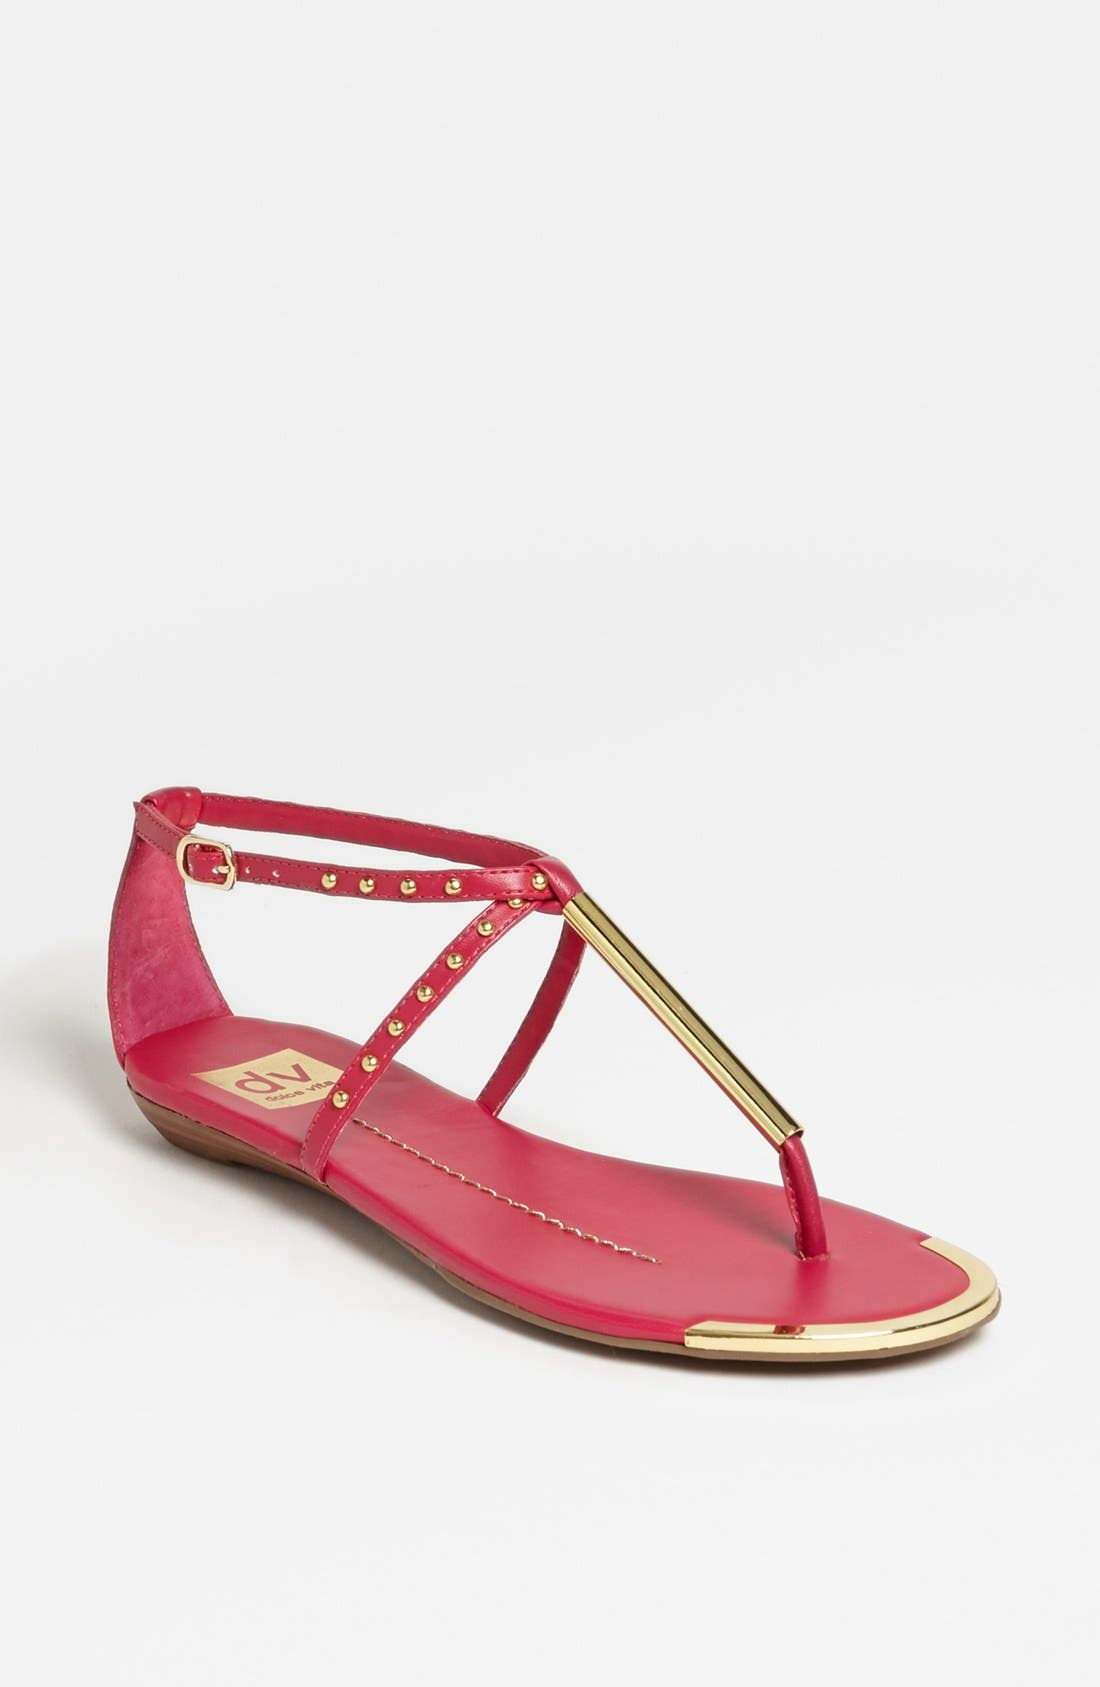 Alternate Image 1 Selected - DV by Dolce Vita 'Apollo' Sandal